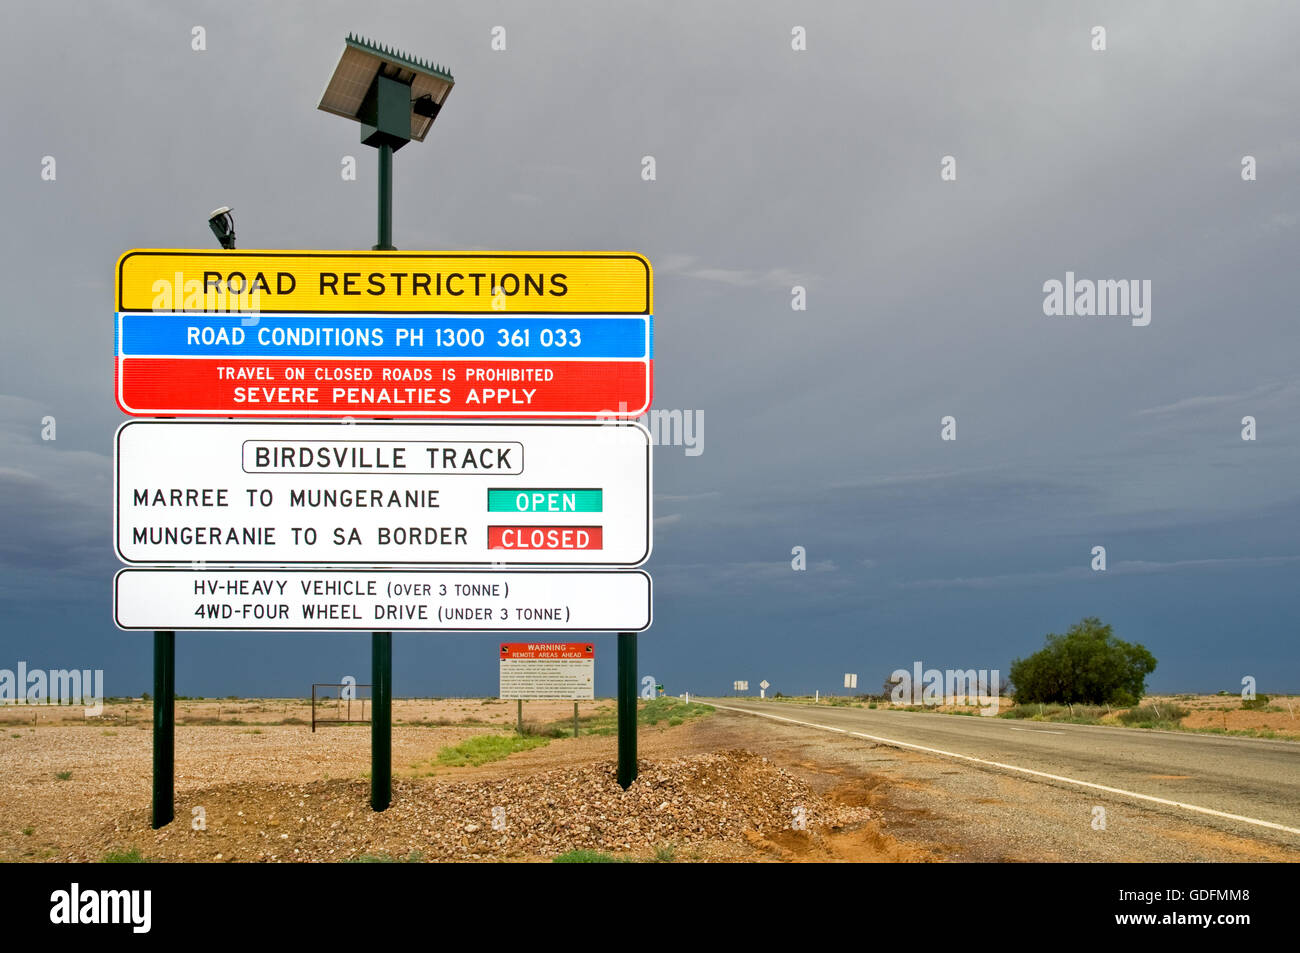 Road Restrictions on Birdsville Track after rain. - Stock Image